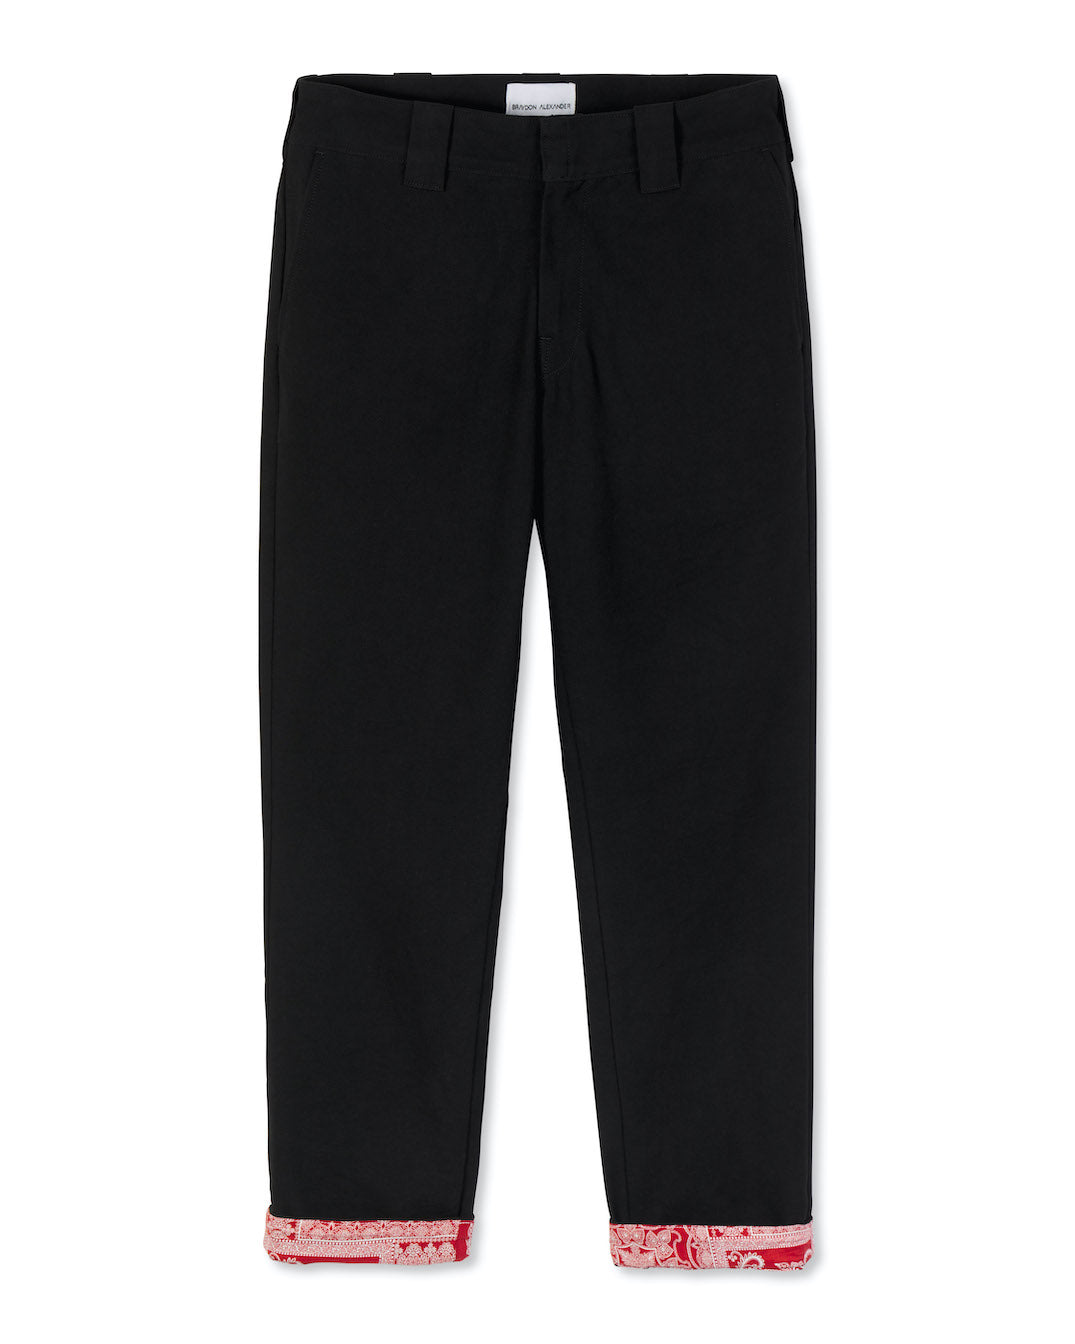 'GONE BABY GONE' TWILL PANTS